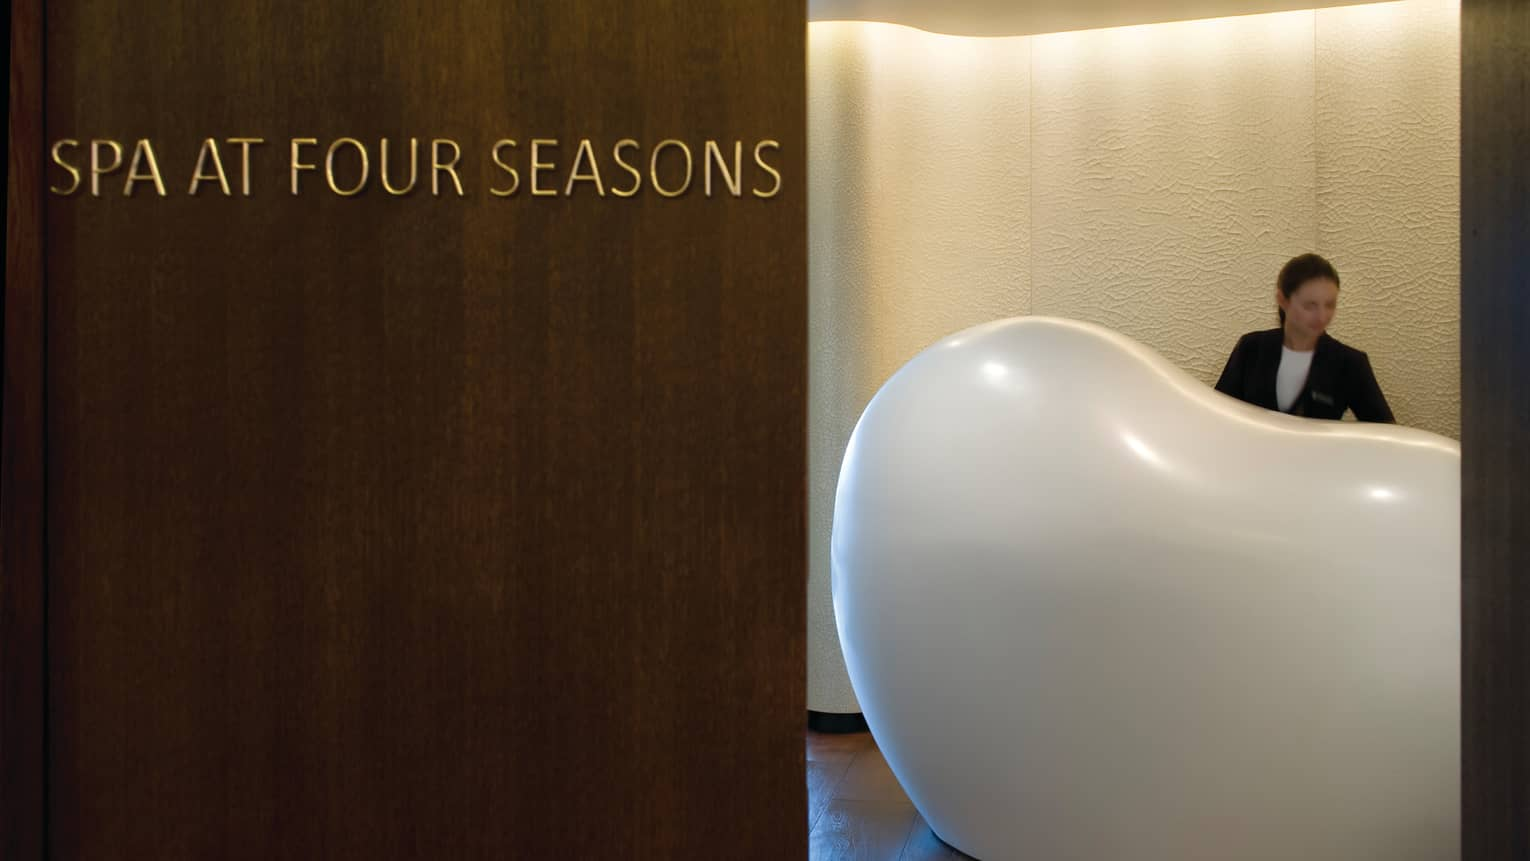 Hotel staff behind white, modern, bean-shaped desk, Spa at Four Seasons sign